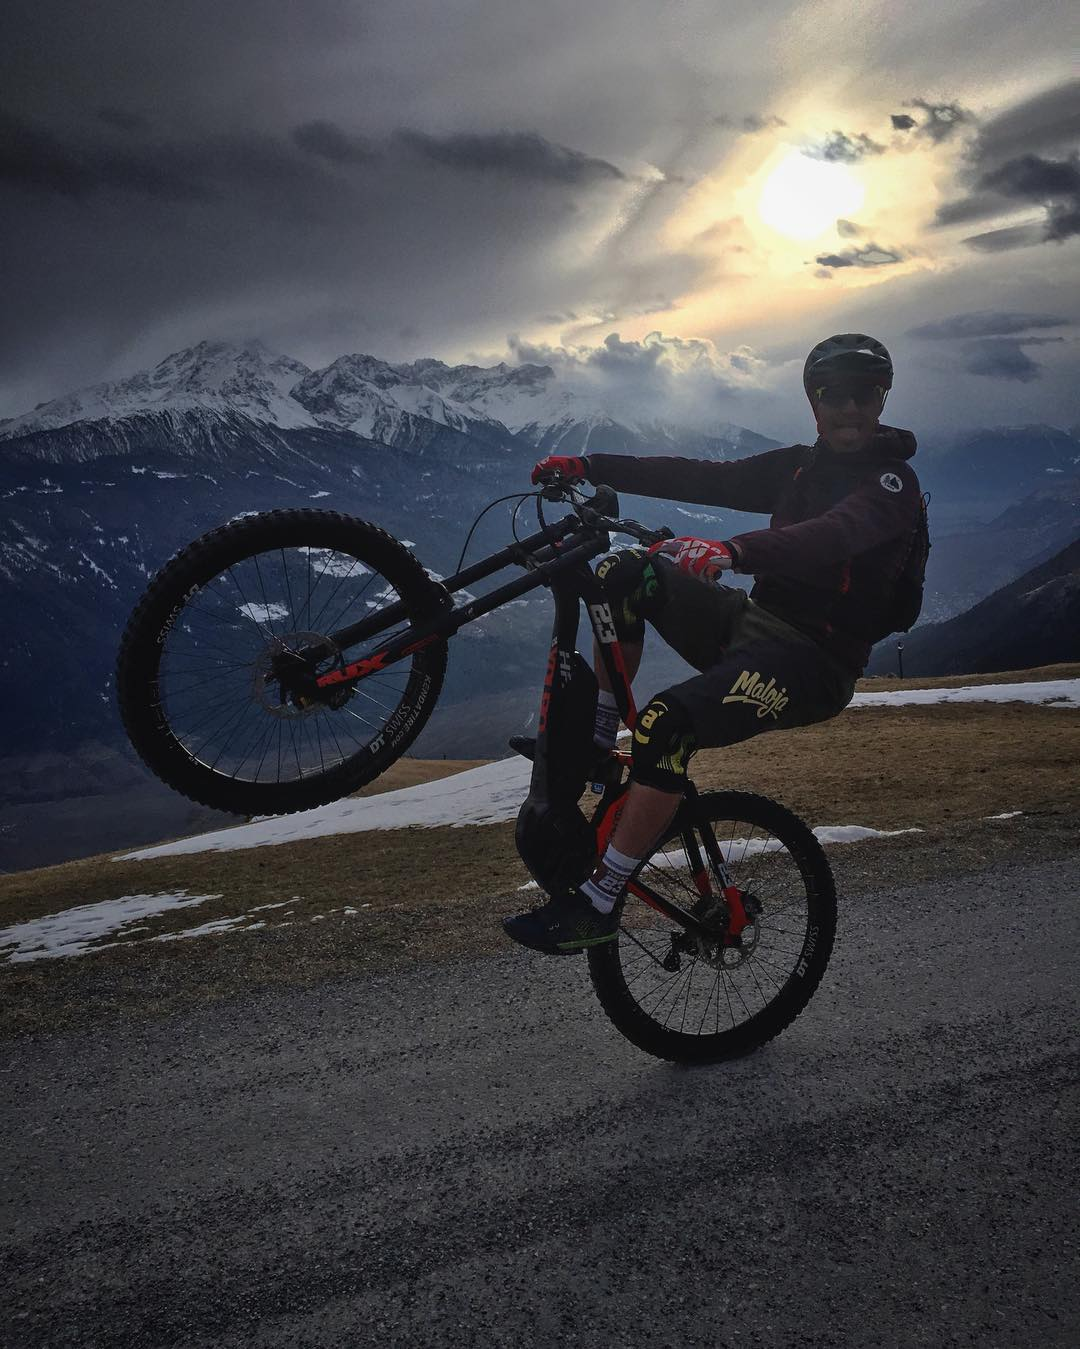 Catching the last rays of the day with @tschugg23 ! #xduro #ride100percent #eperformance #emtb #mtb #dh #enduro